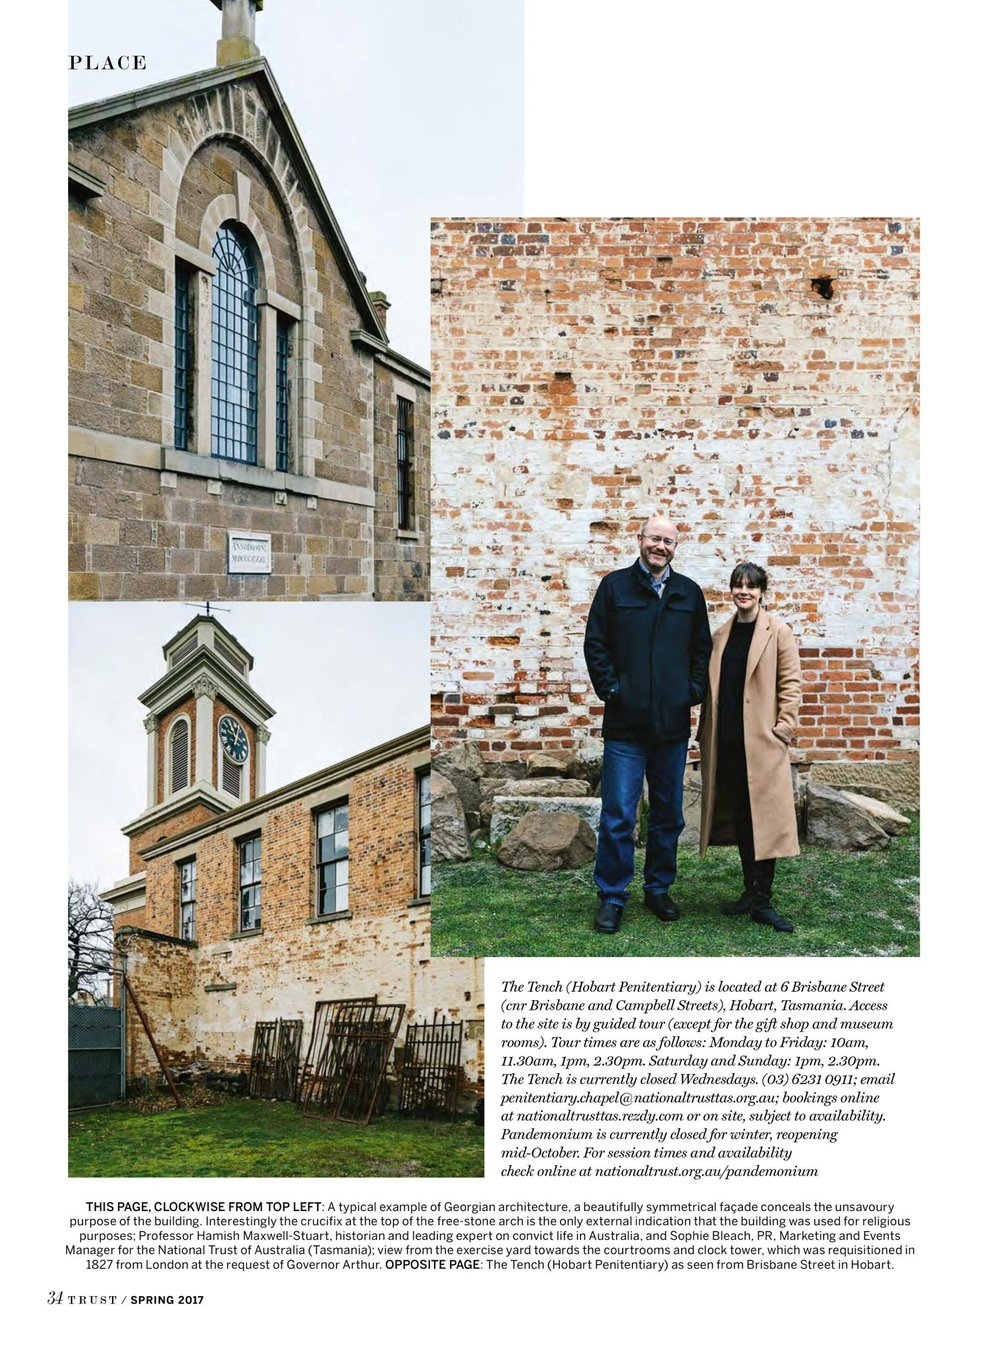 Marnie Hawson, Melbourne lifestyle photographer for Trust magazine, Issue 3 (Hobart Penitentiary)